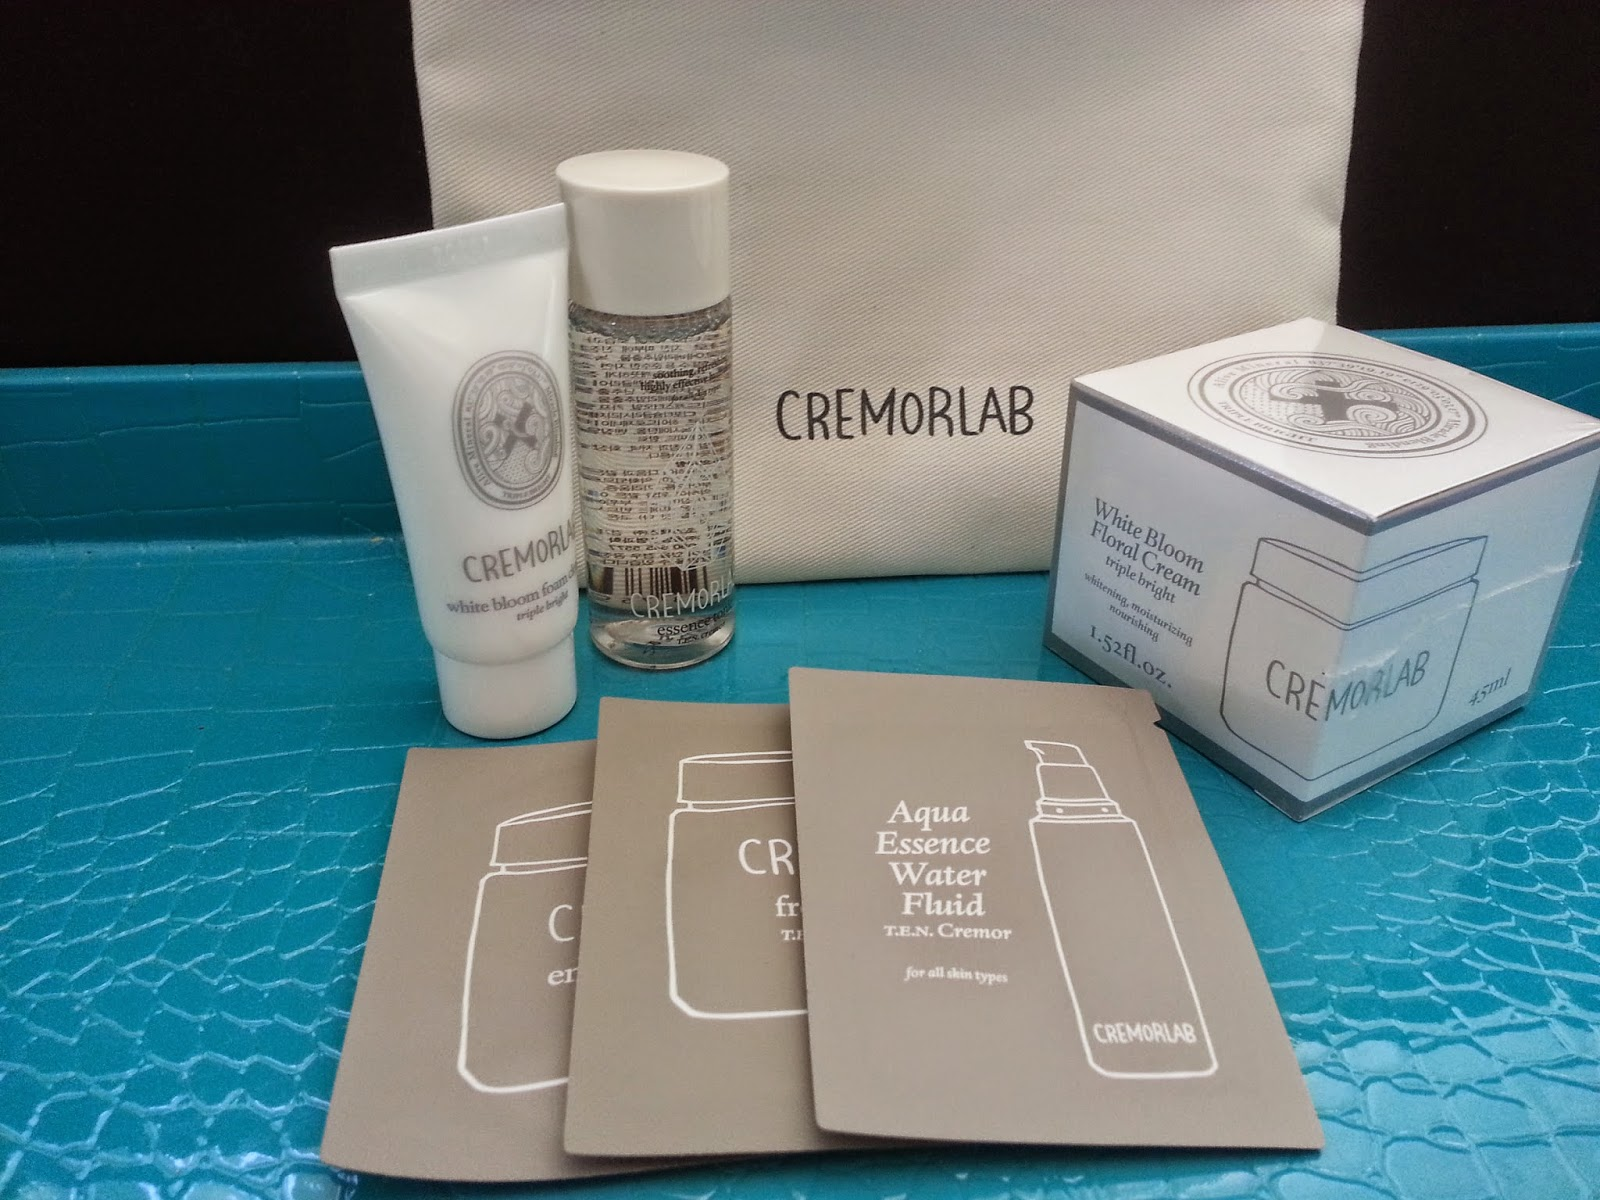 Cremorlab White Bloom Floral Cream, Cremorlab Travel Bag Goodies